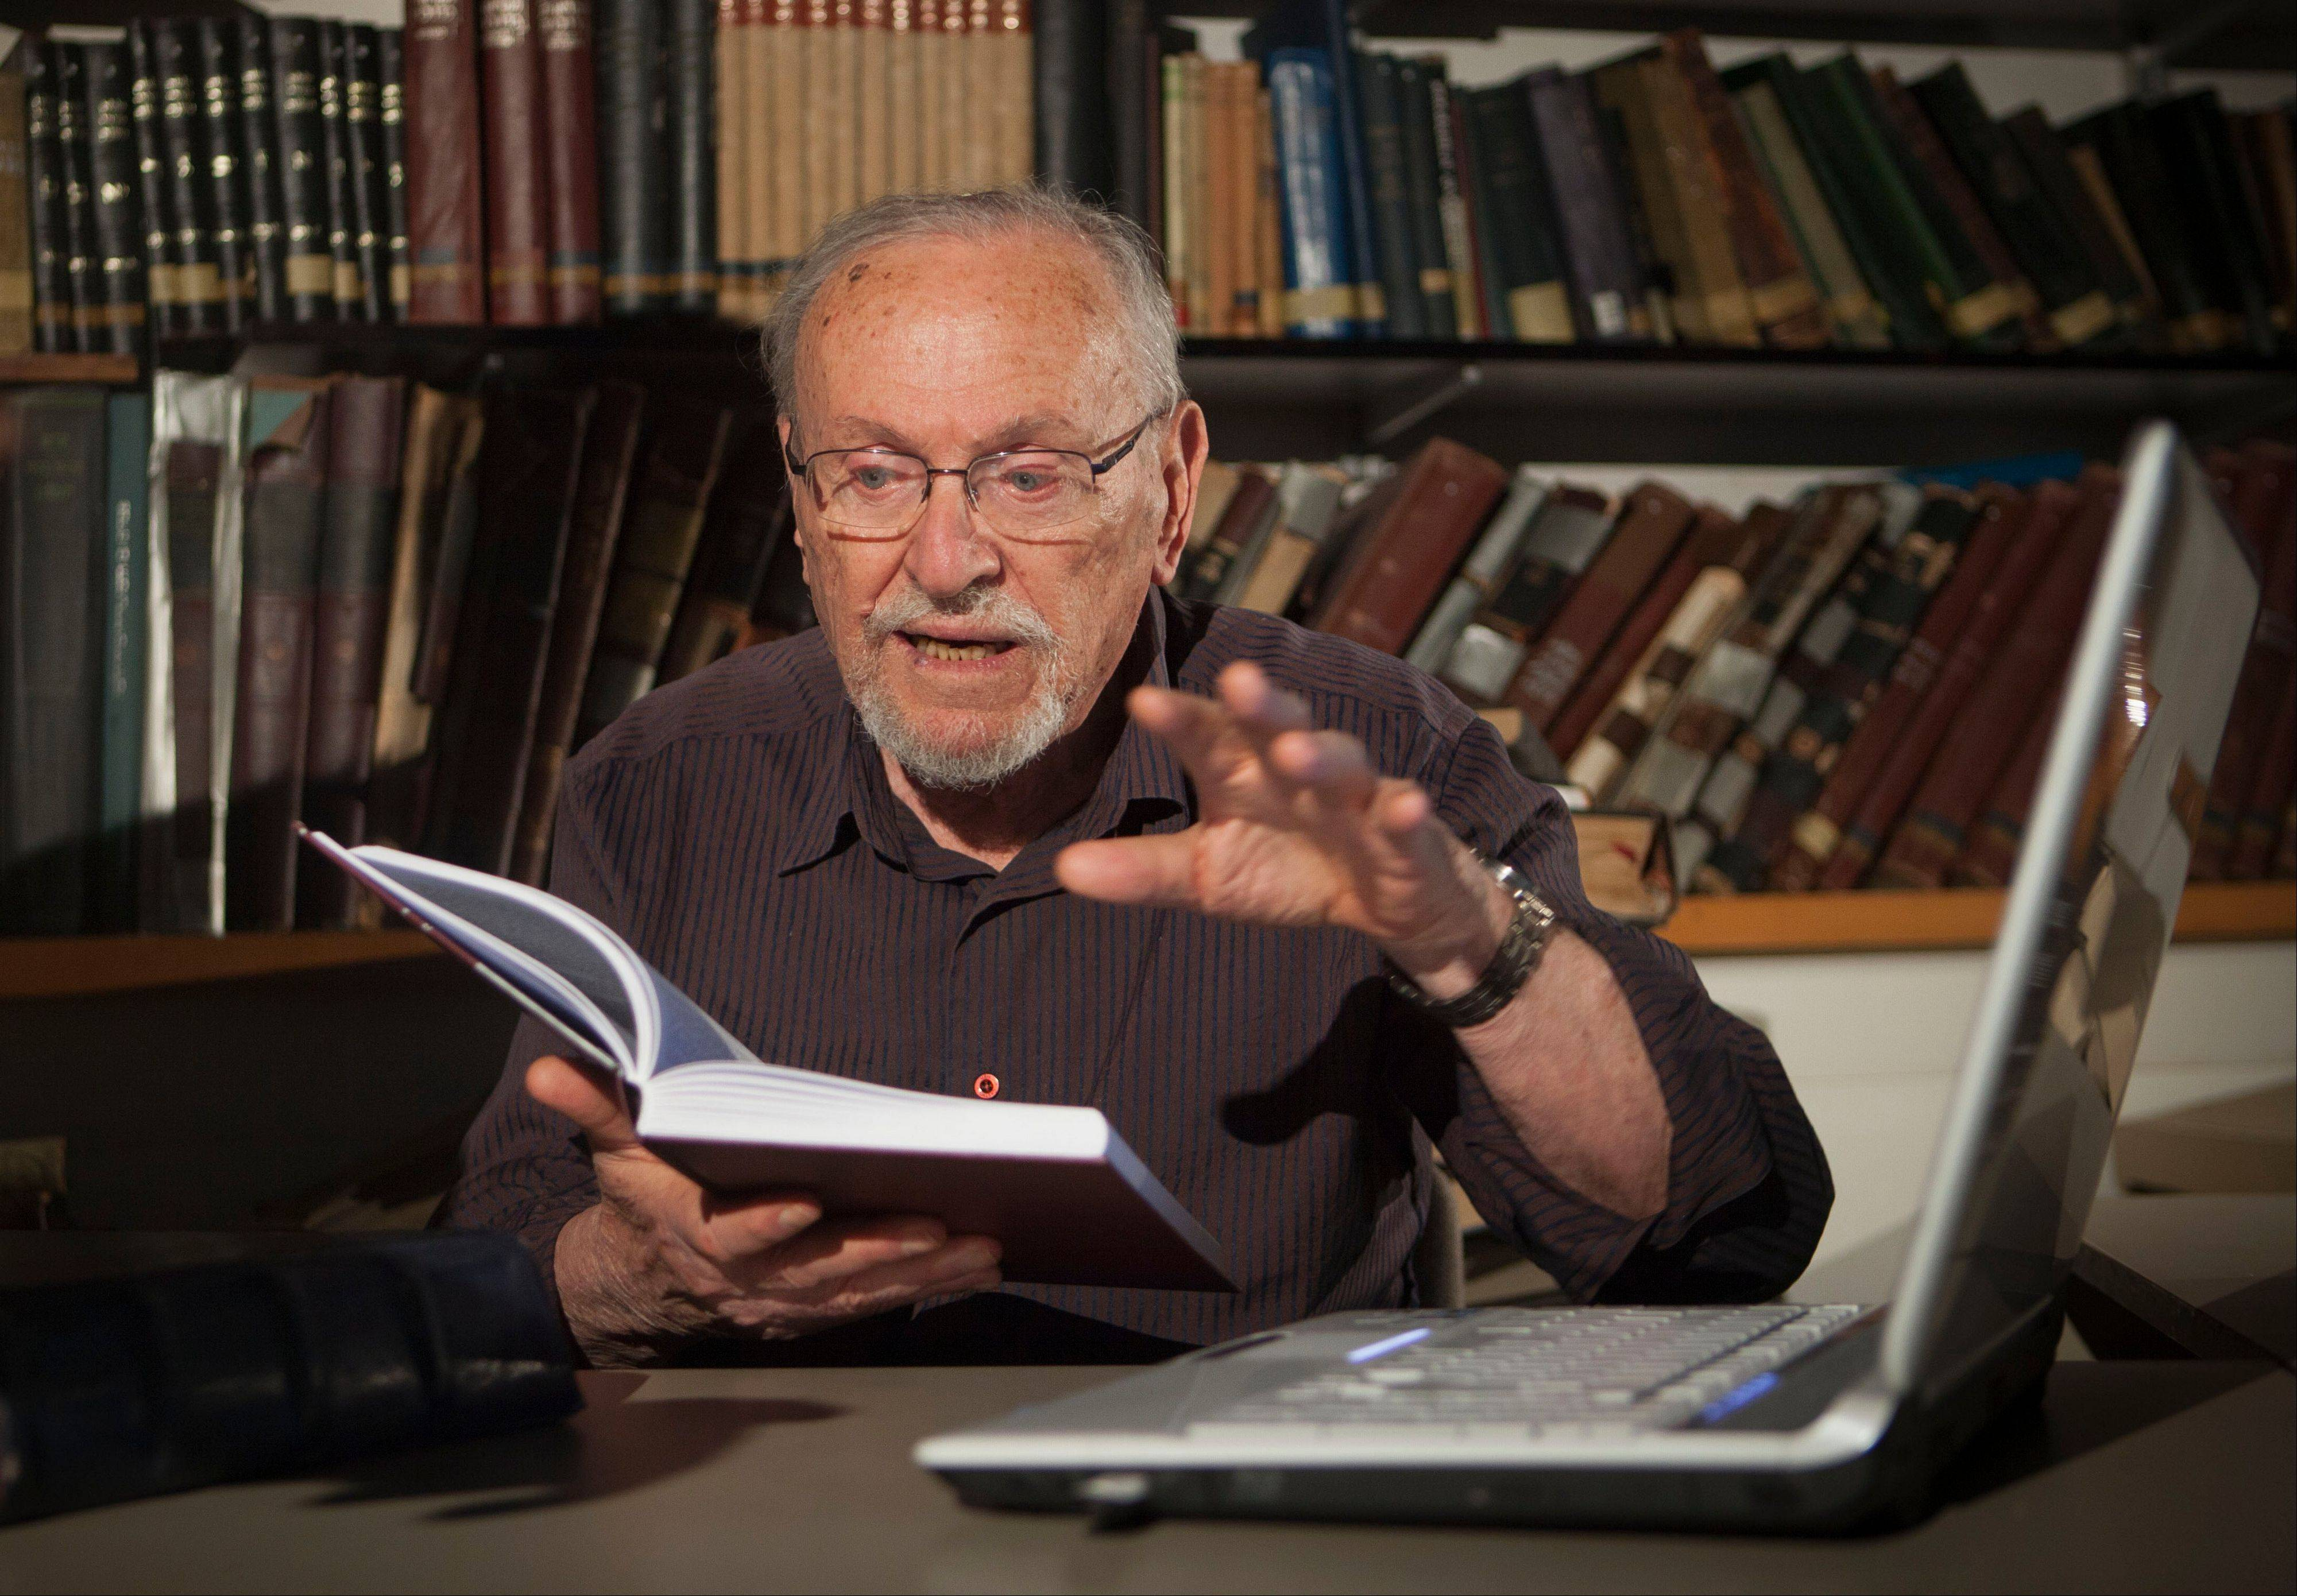 For the past 30 years the 84-year-old Judaic biblical scholar Professor Menachem Cohen has been immersed in a Sisyphean task of correcting all known errors in Jewish scripture to produce a definitive edition of the Hebrew Bible. Now, thanks to the Internet, he's bringing it to the general public like never before with a sophisticated search engine that allows even novices to explore the holy text with ease.